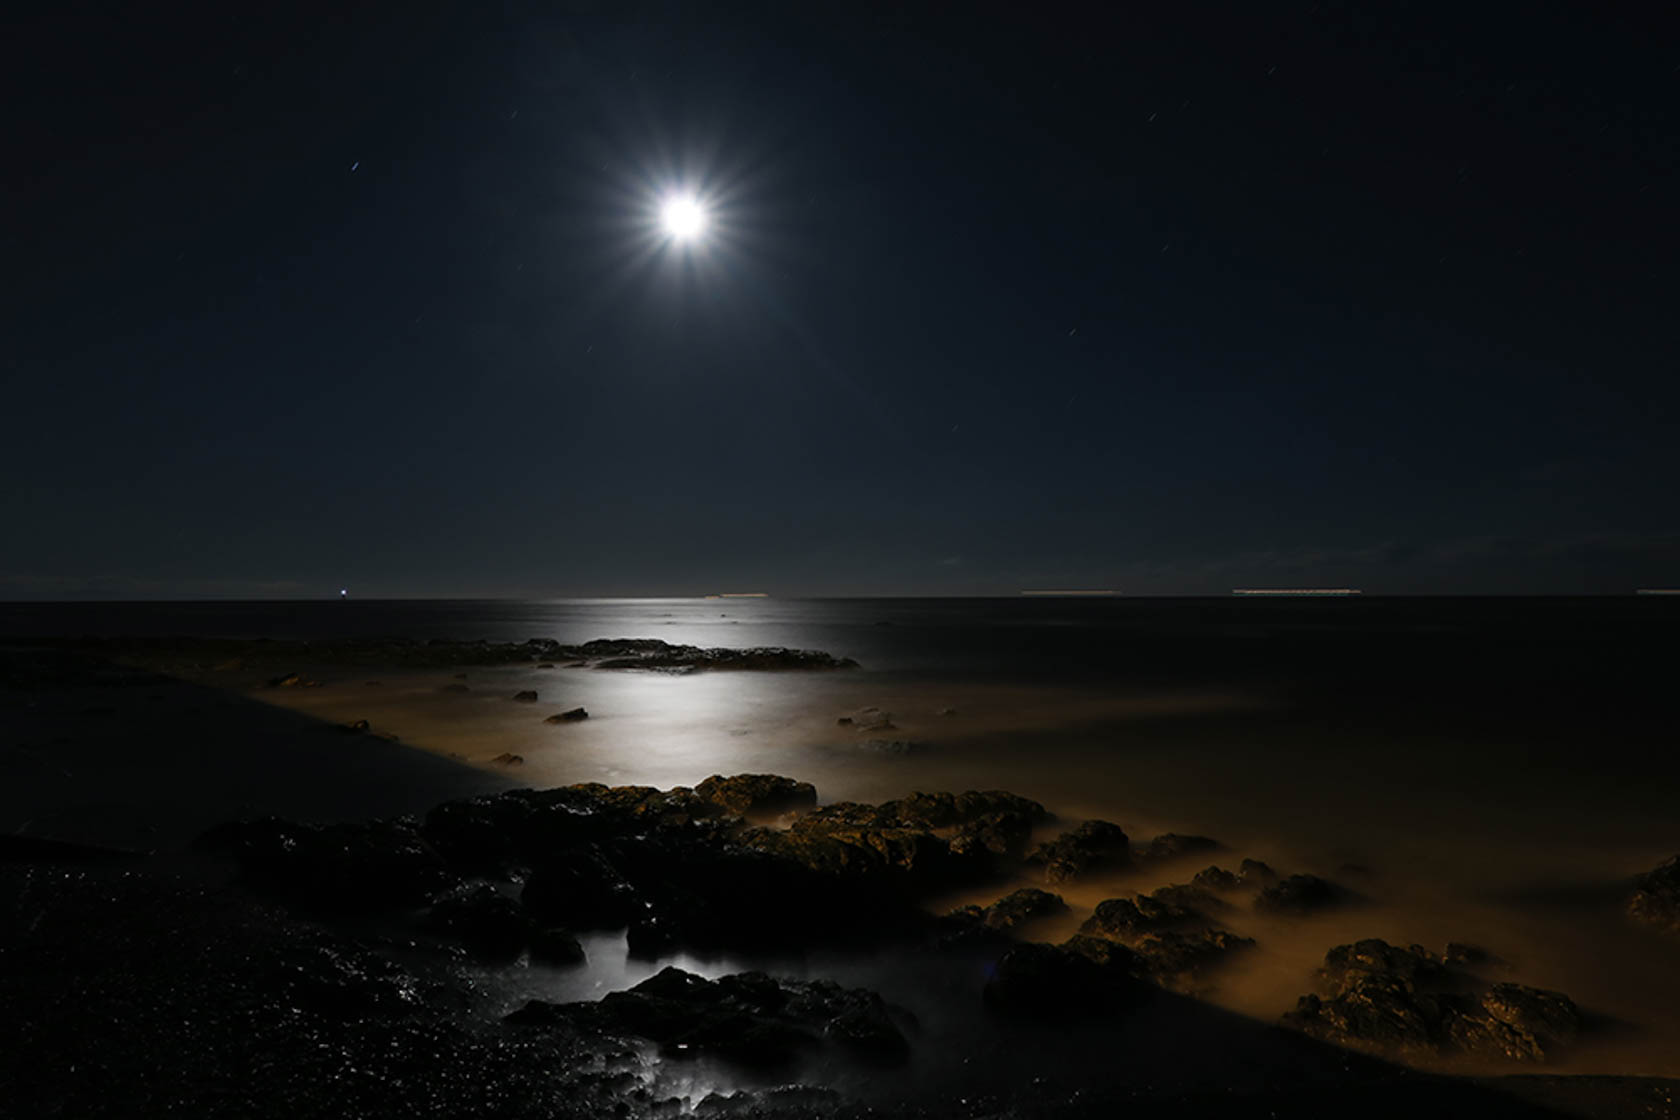 The moon over a dark beach shot on the PowerShot G3 X